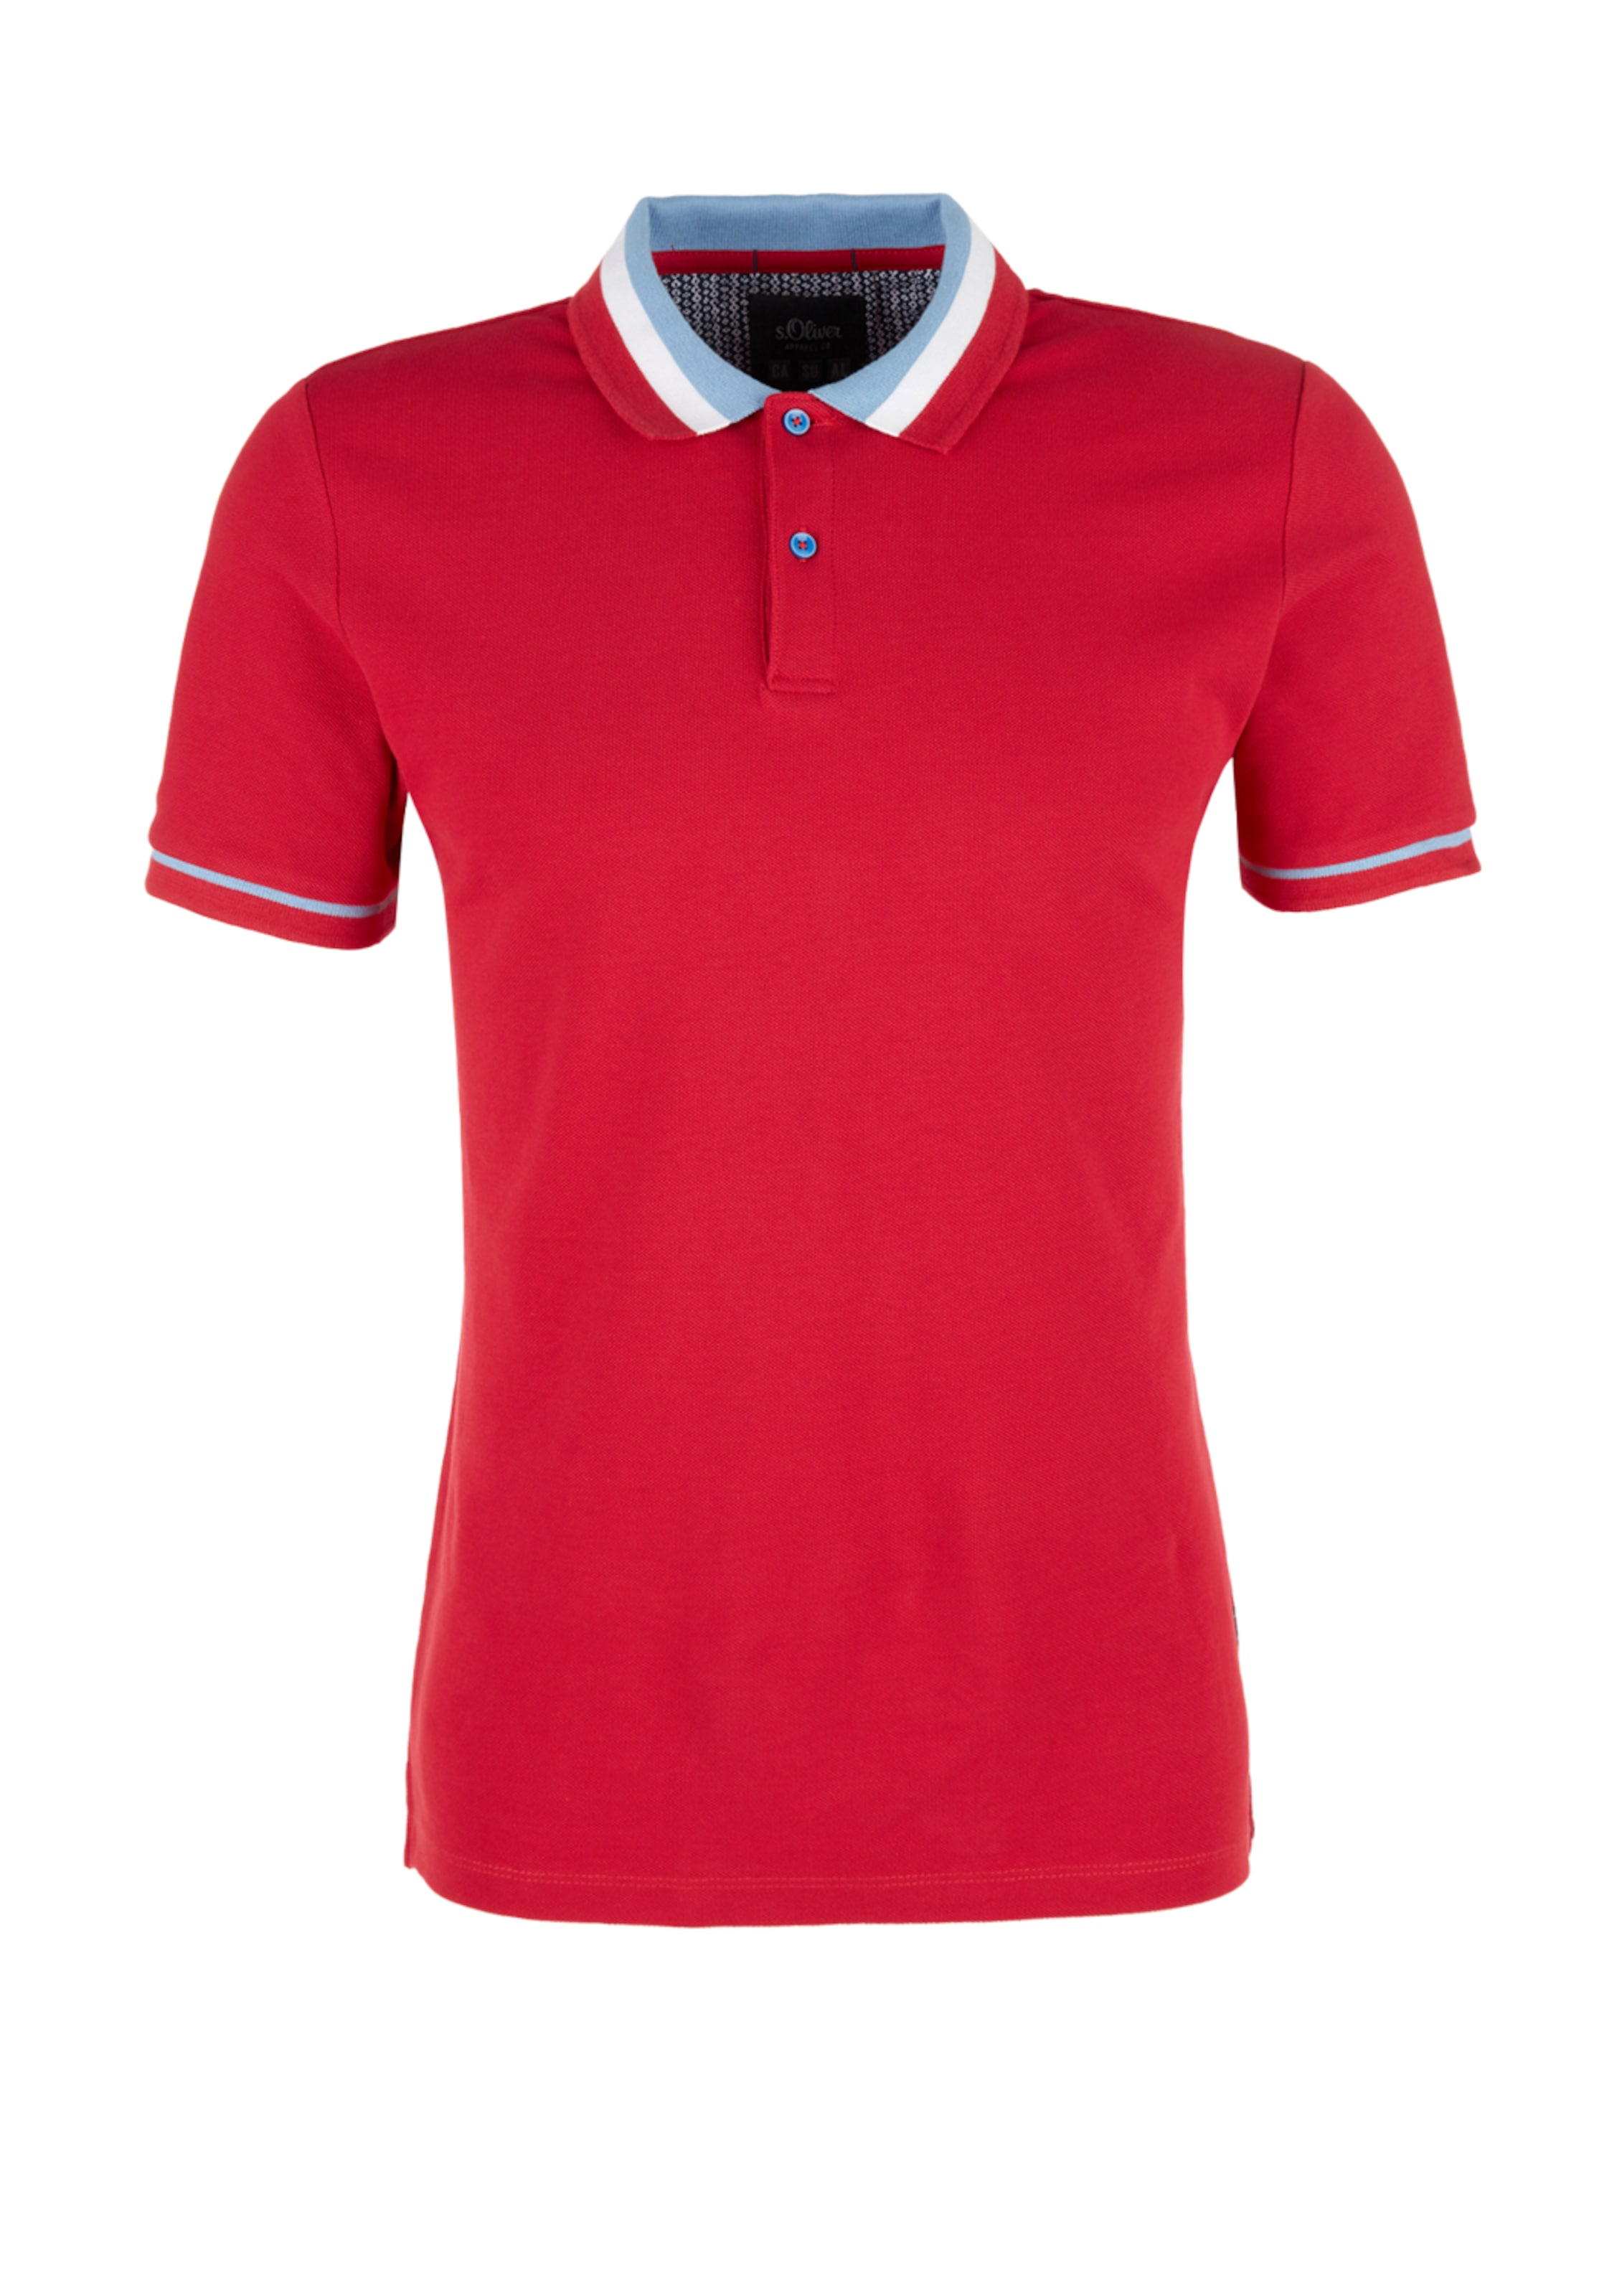 Red Shirt RauchblauRot Weiß In Label S oliver 0XnO8PNwk